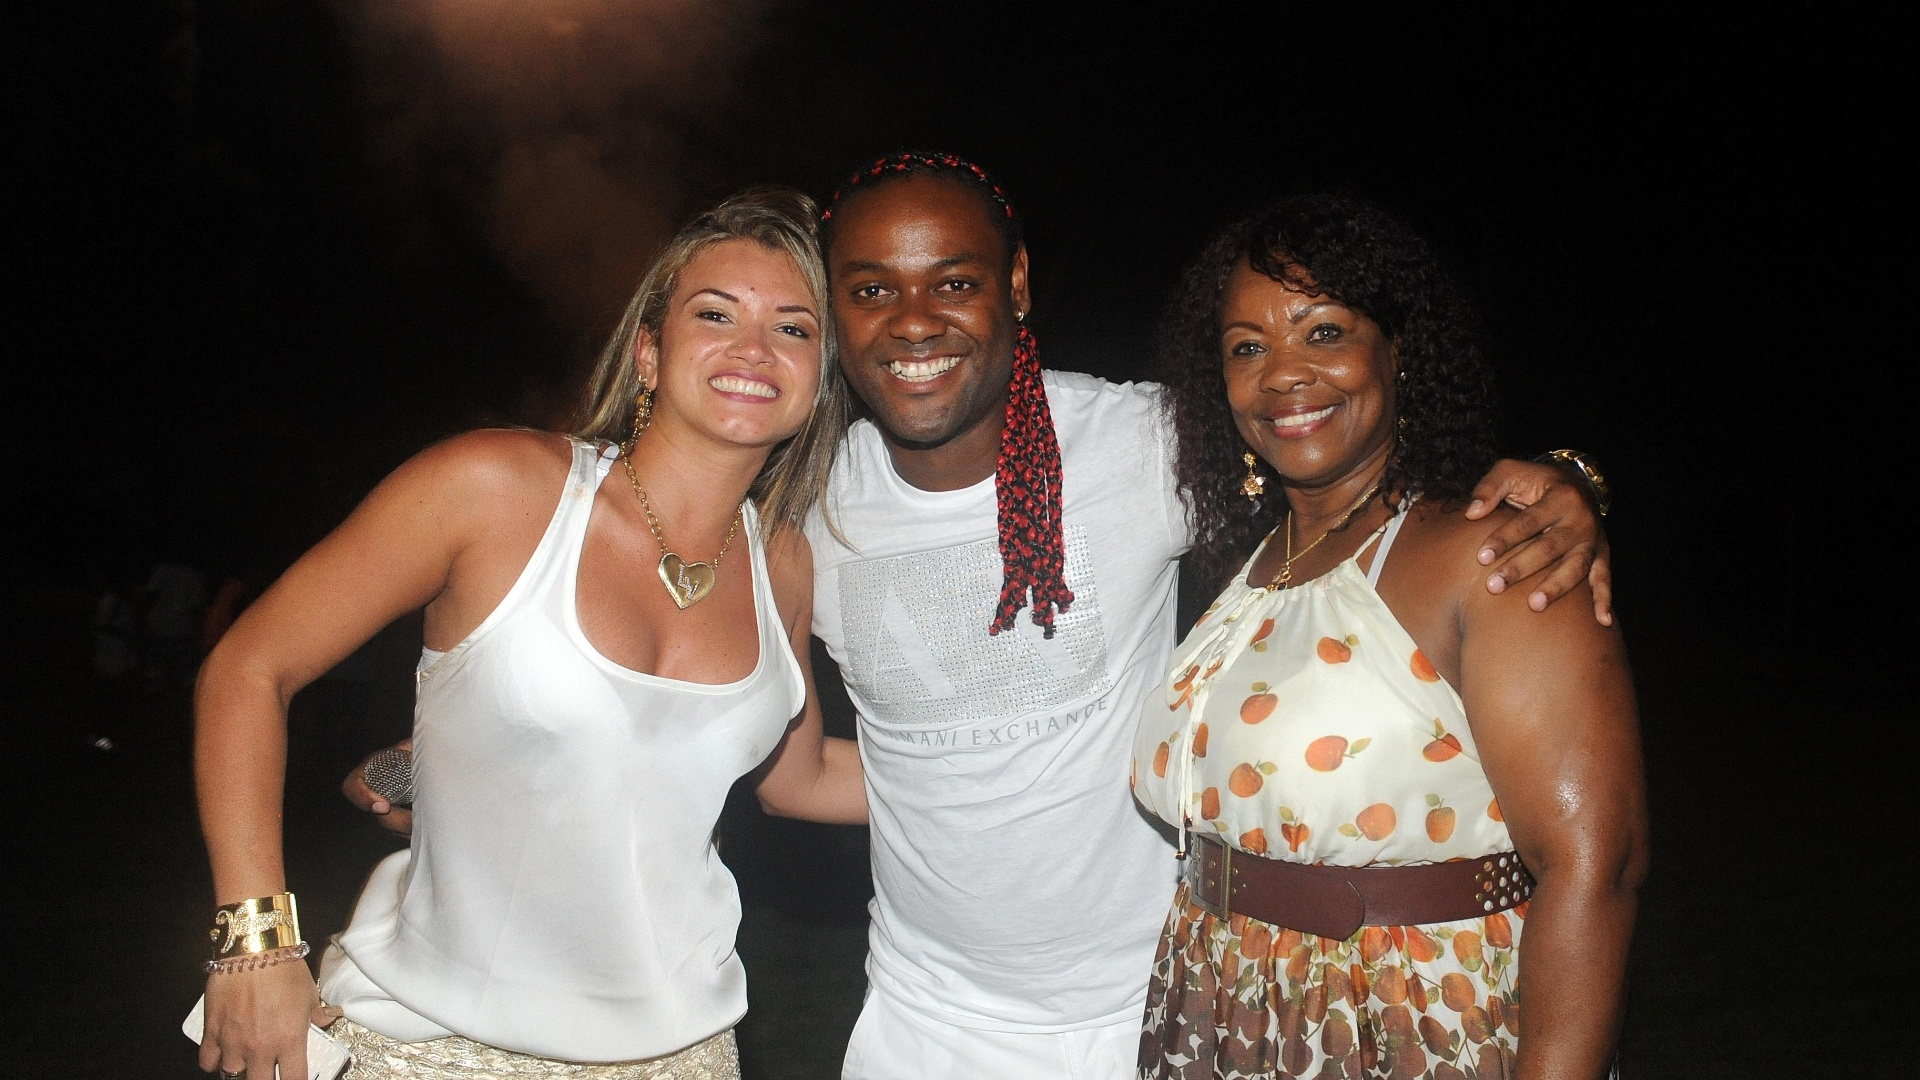 Vagner Love passou a virada de ano com familiares e a noive Lucilene Pires (d)